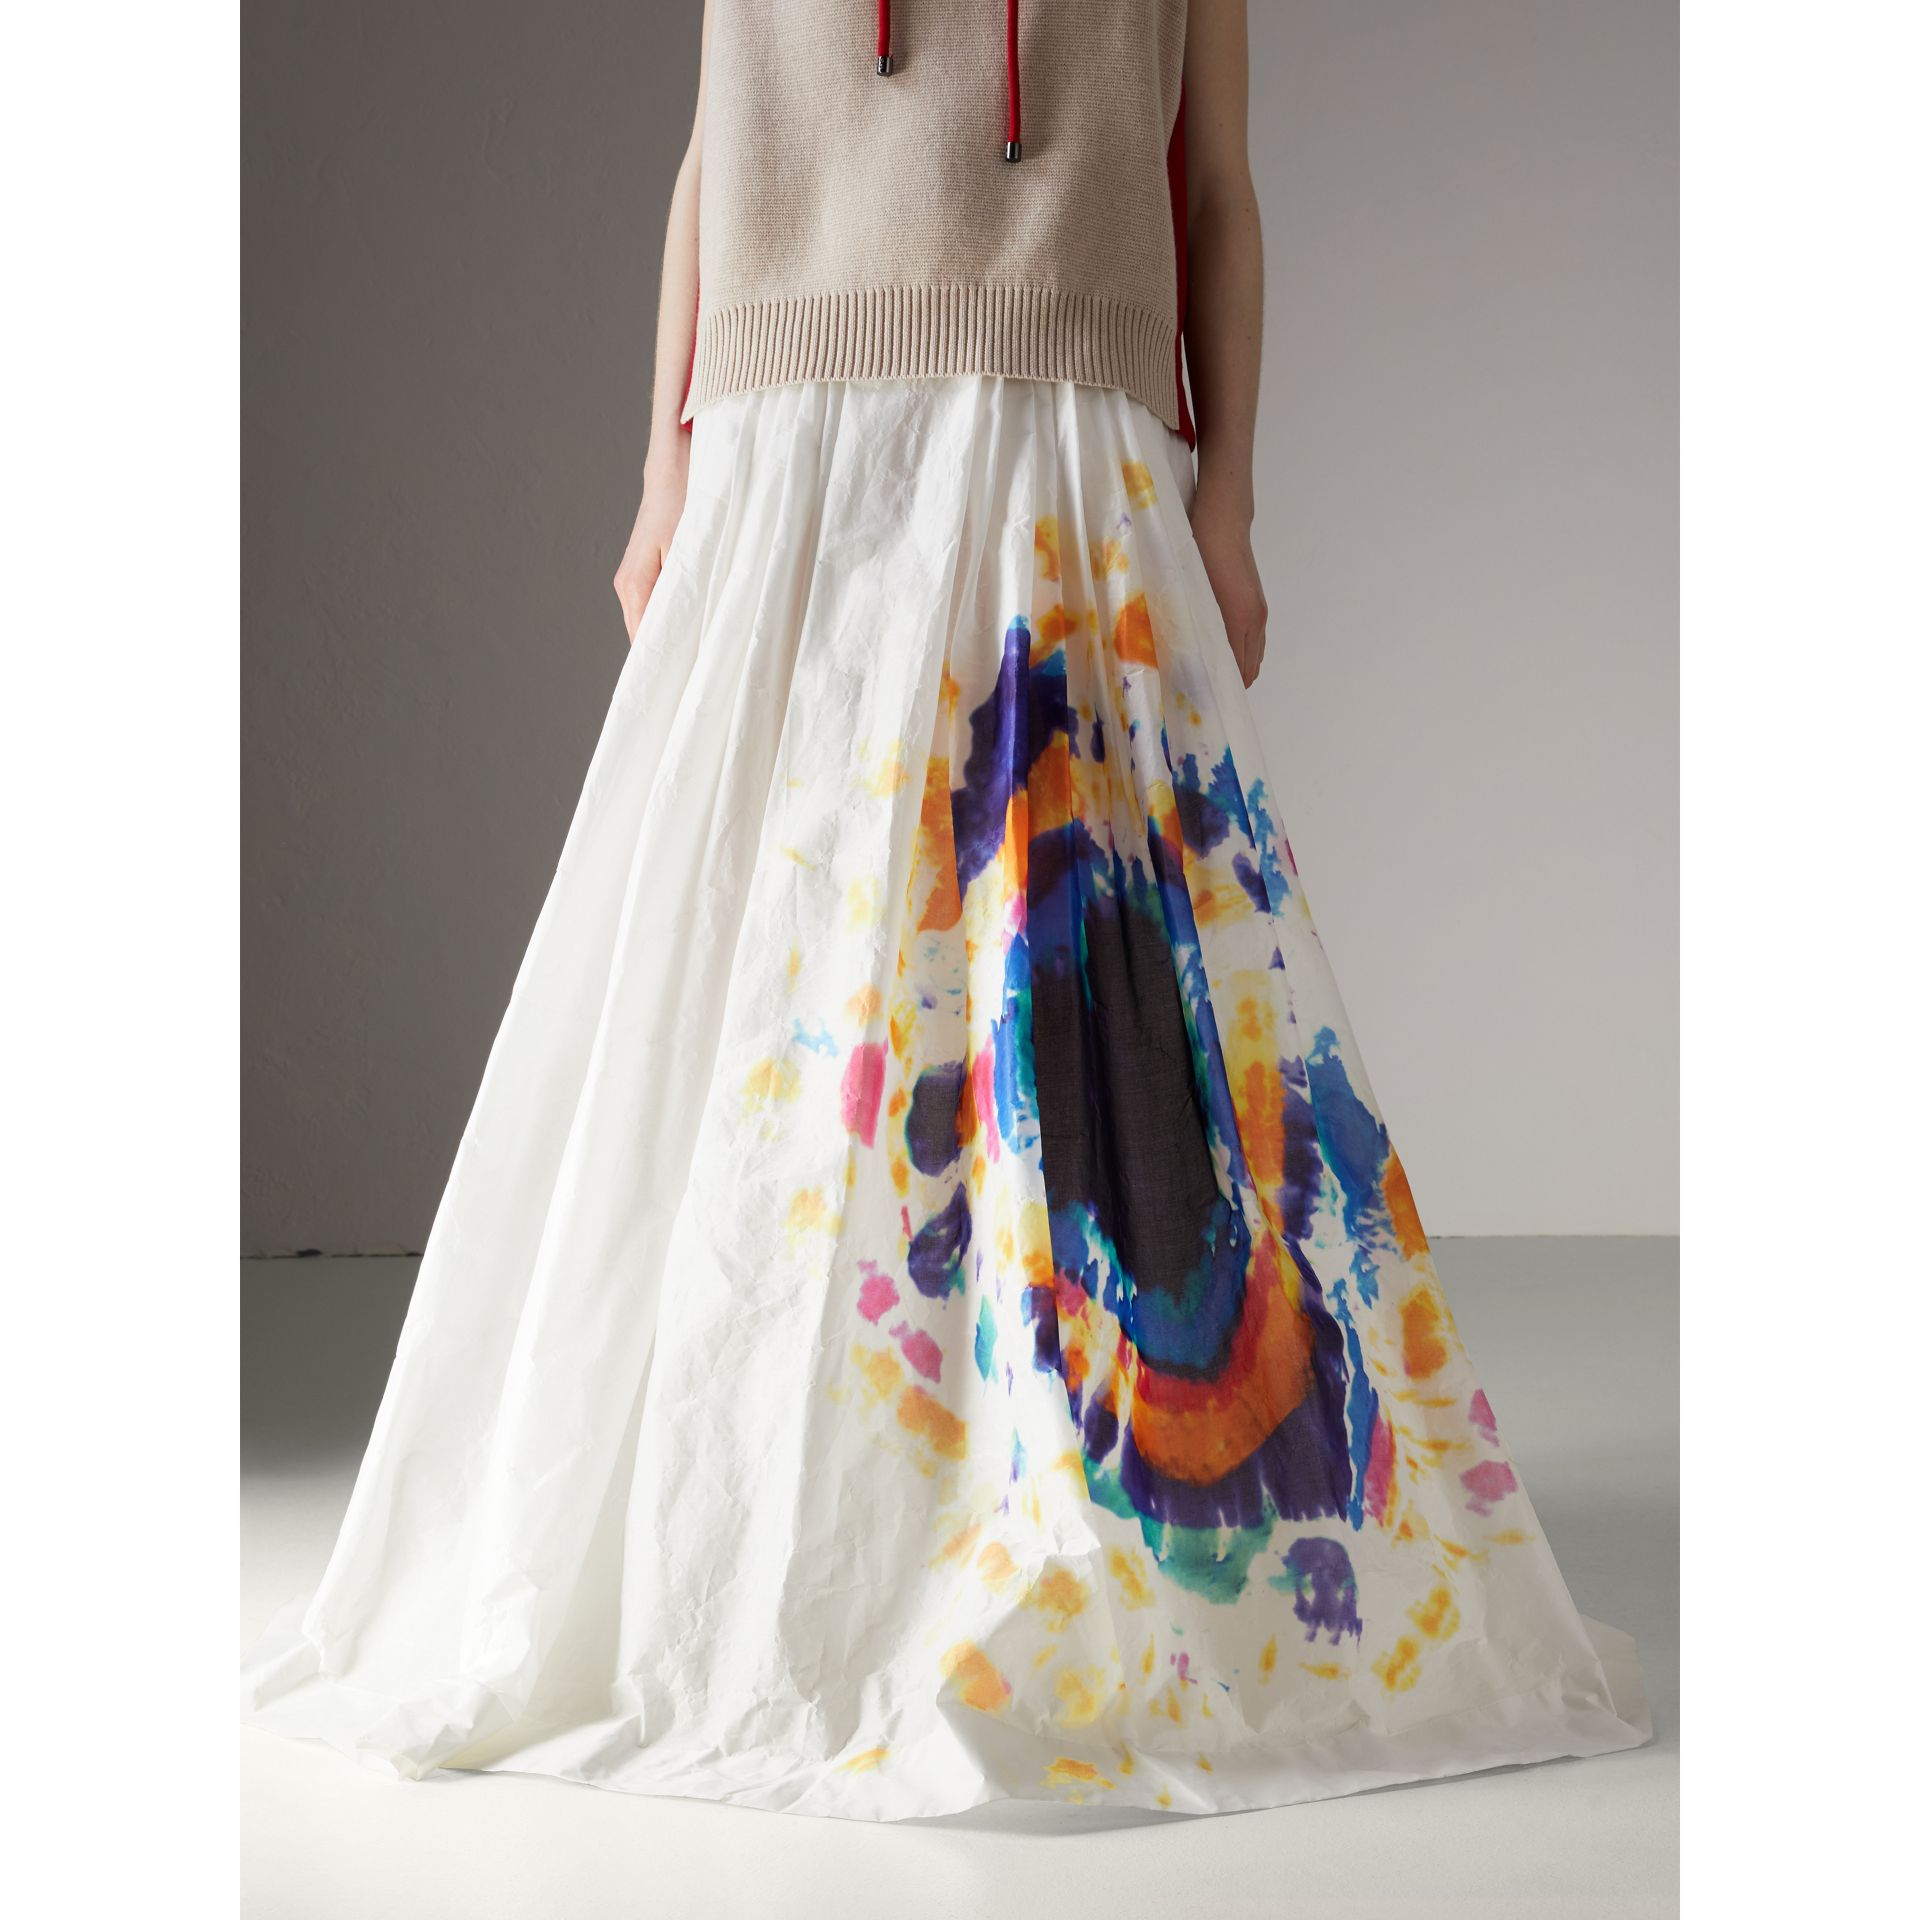 Tie-dye Print Maxi Skirt in Multi-bright Blue - Women | Burberry Canada - gallery image 4